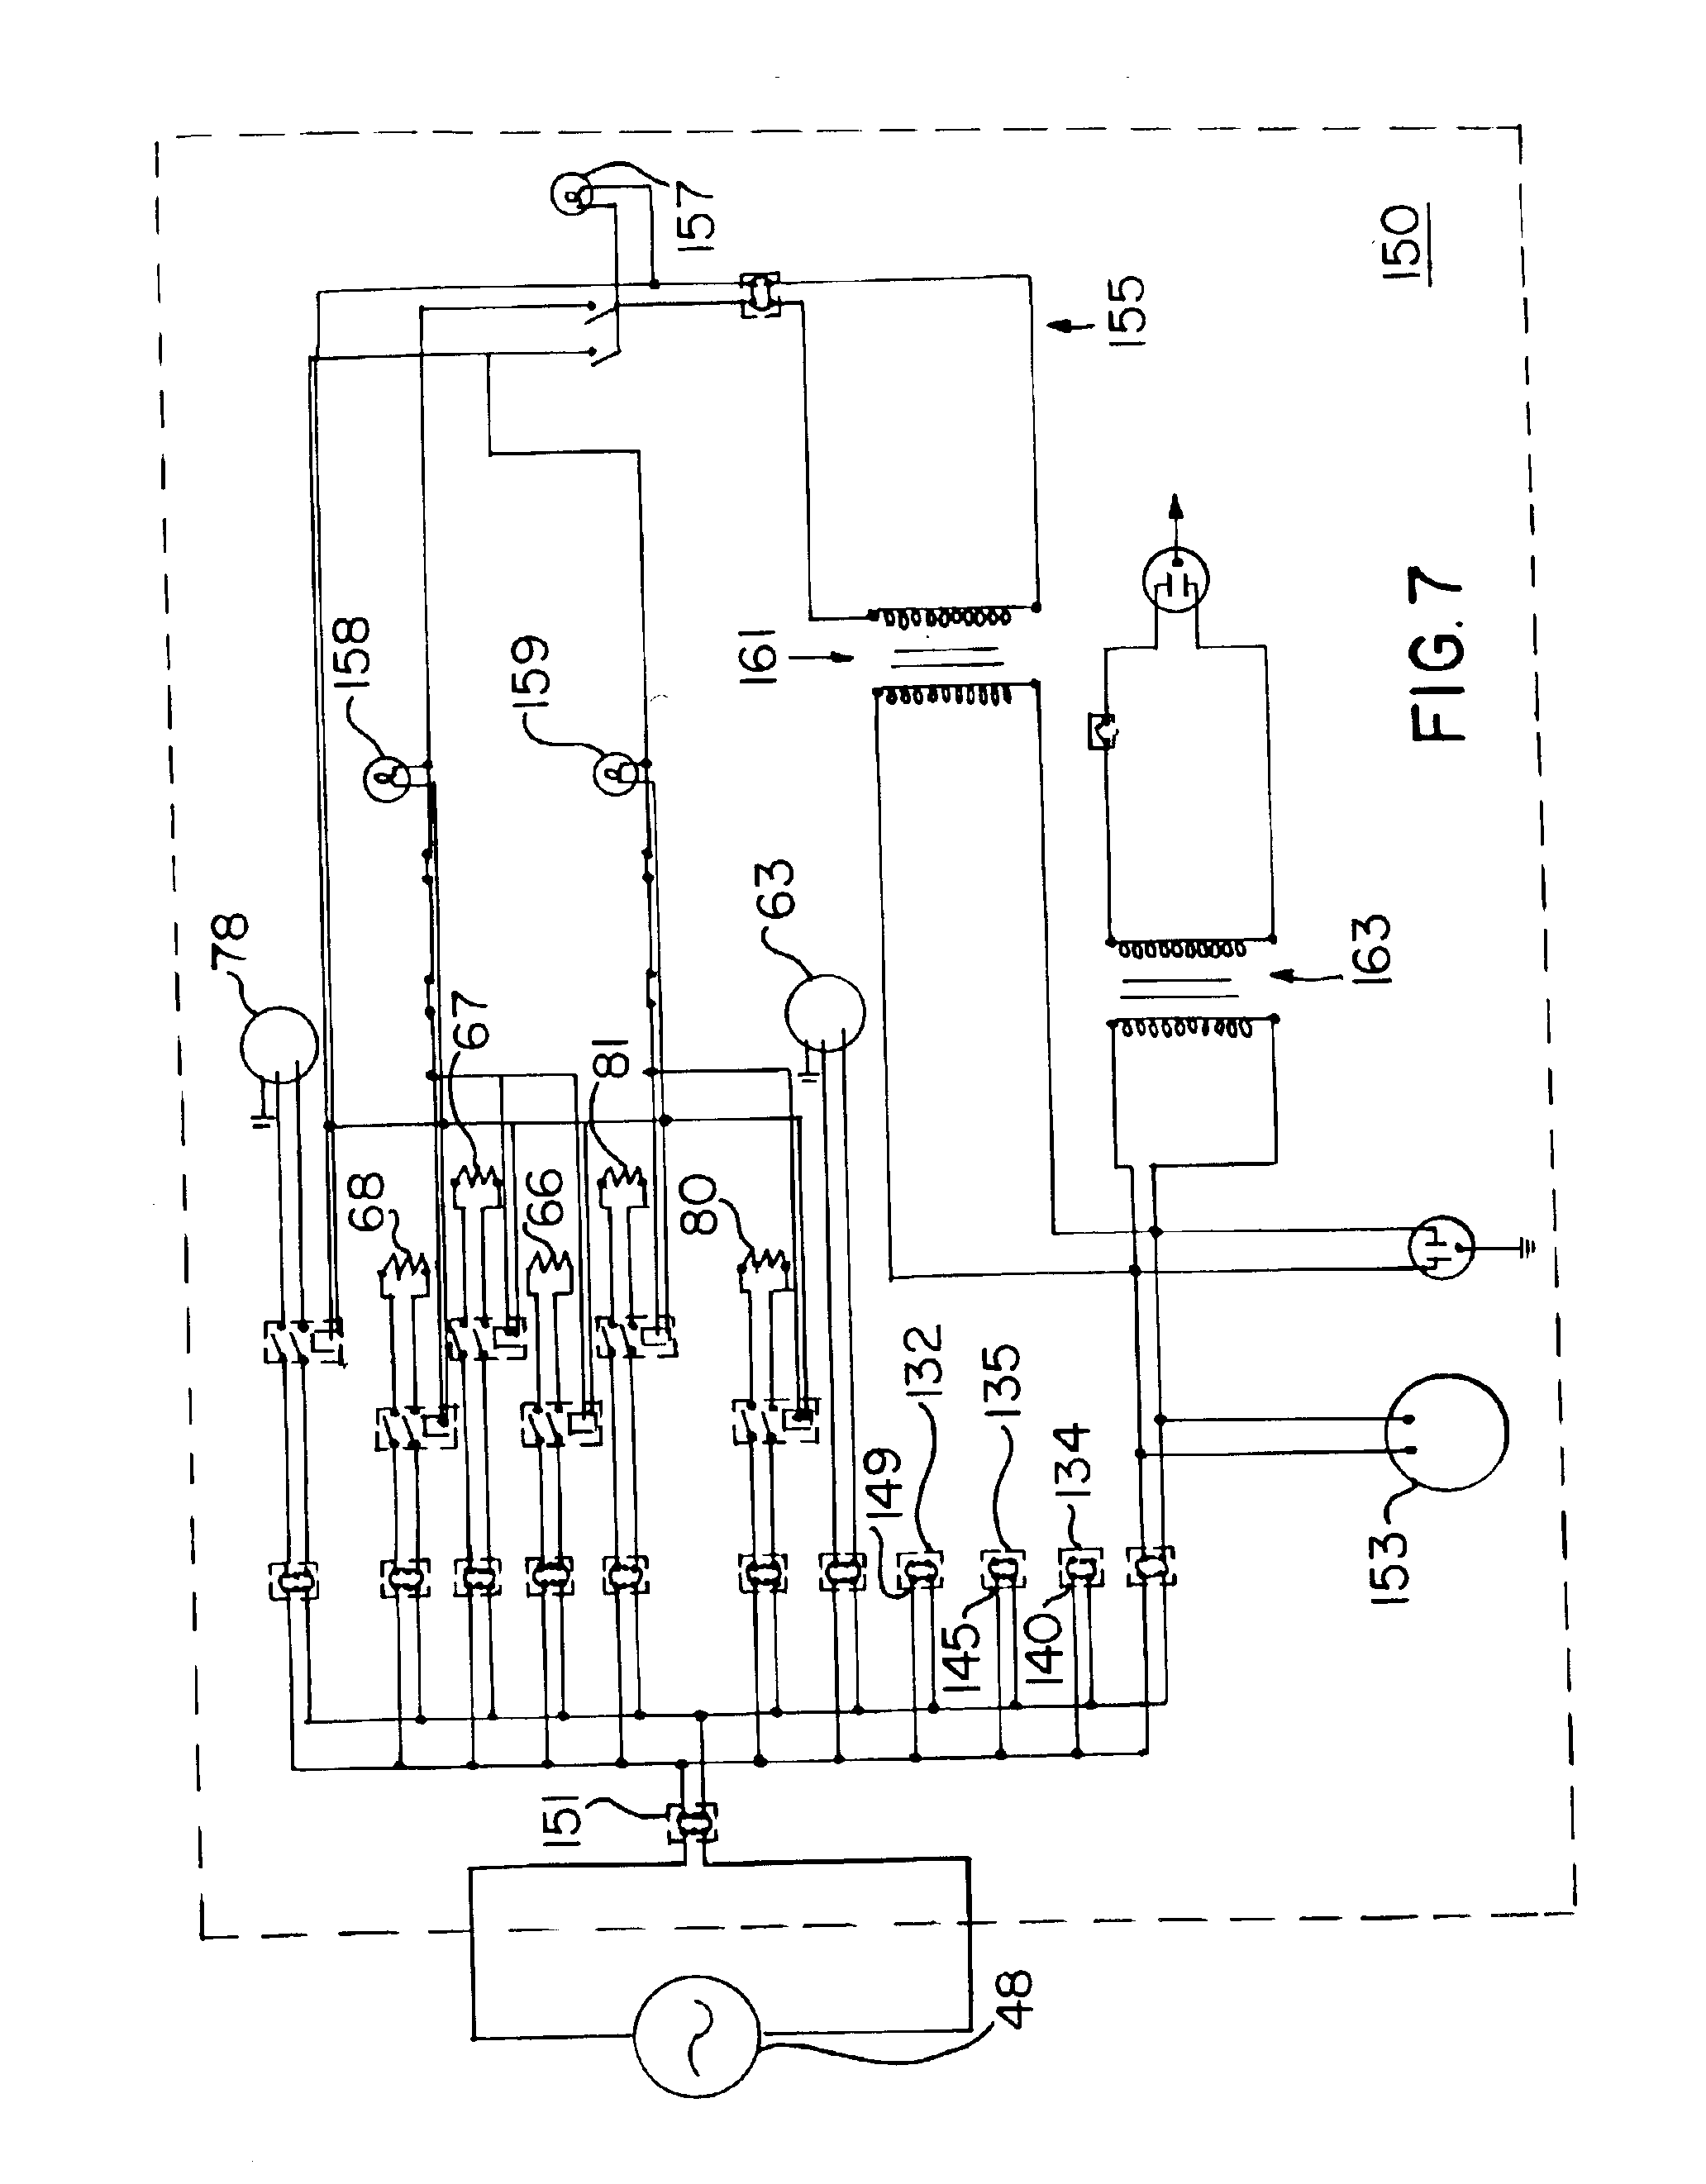 onan 5000 generator wiring diagram  onan  free engine image for user manual download